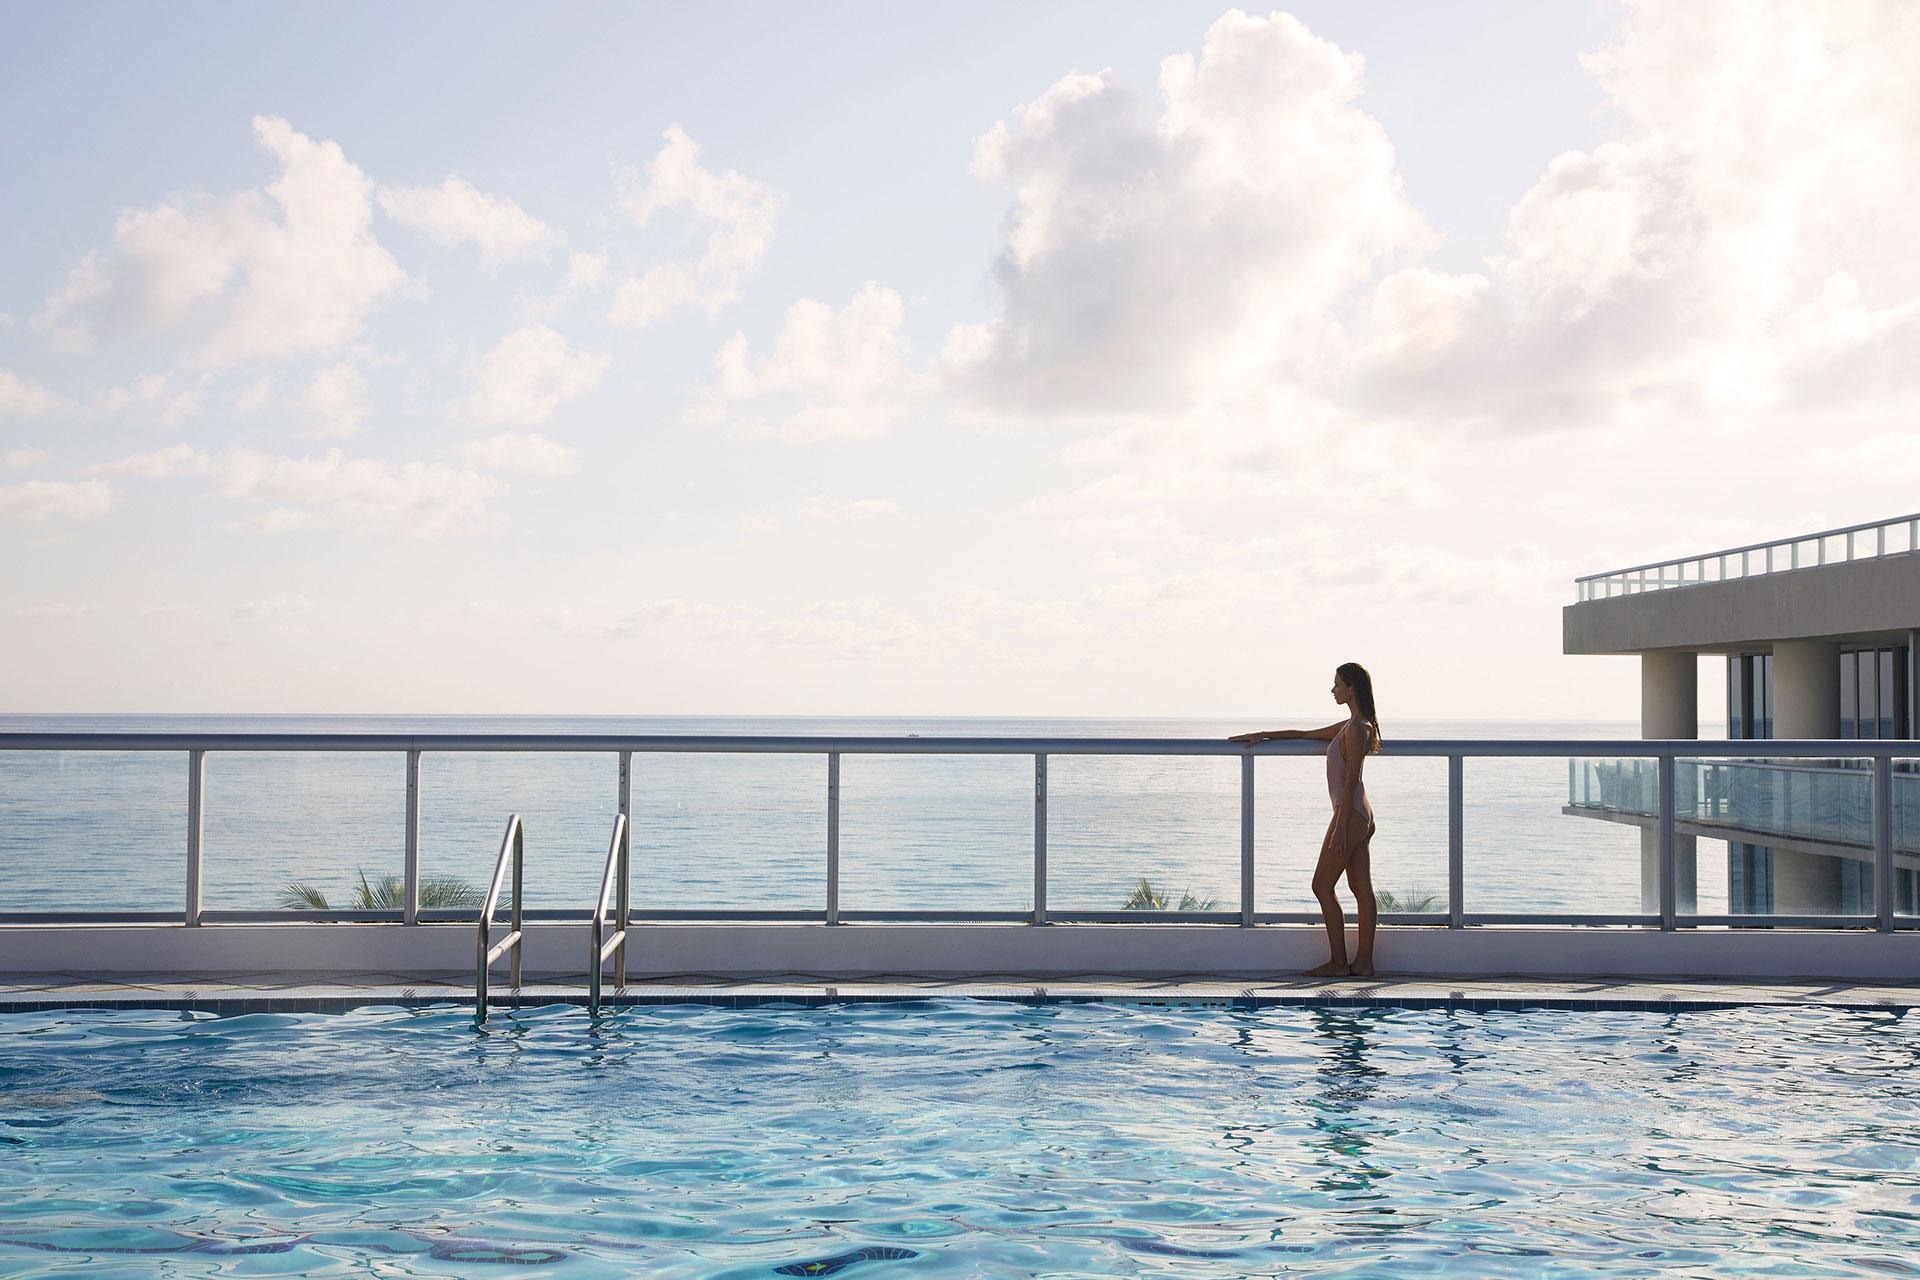 a woman in a bathing suit stands looking out over a balcony. There view is of the ocean and the resort grounds. In the foreground is a long swimming pool